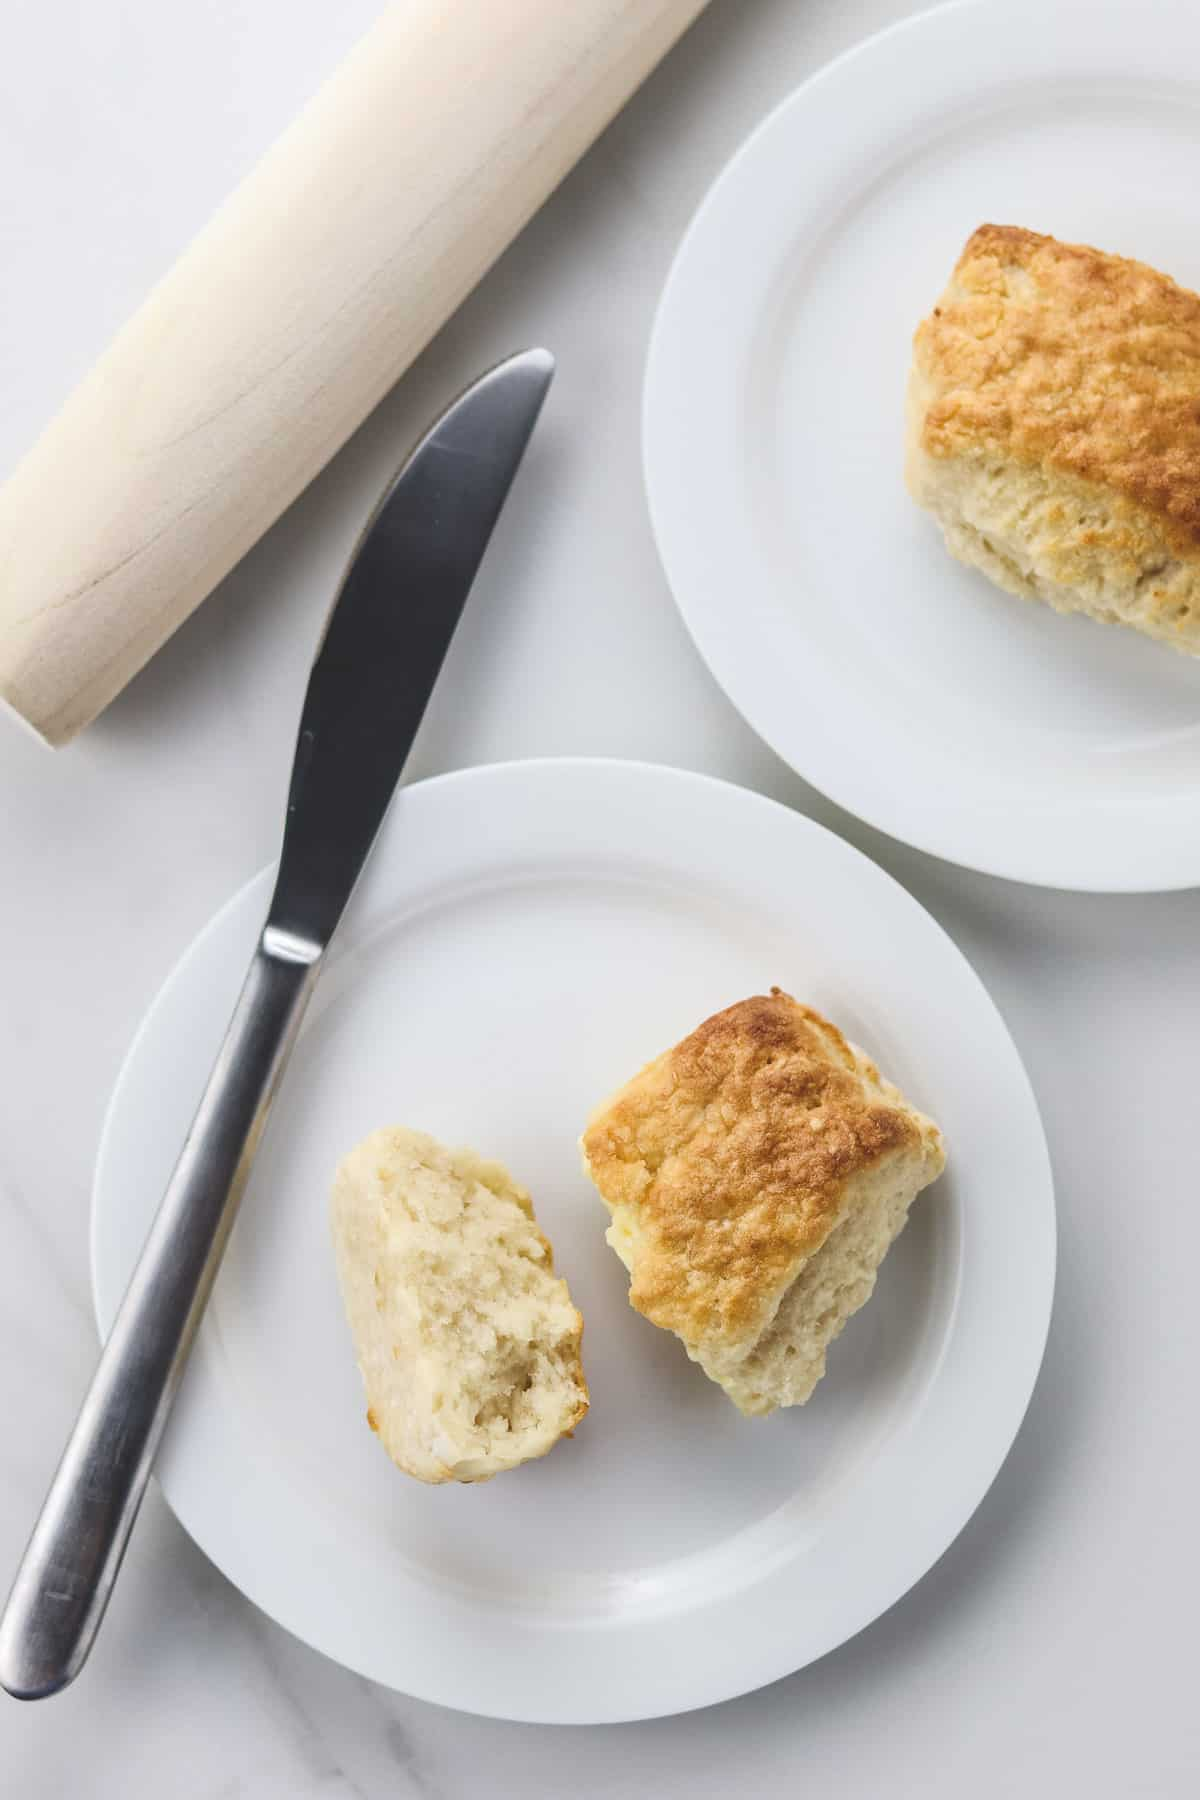 healthy air fryer biscuits on white plates with a butter knife